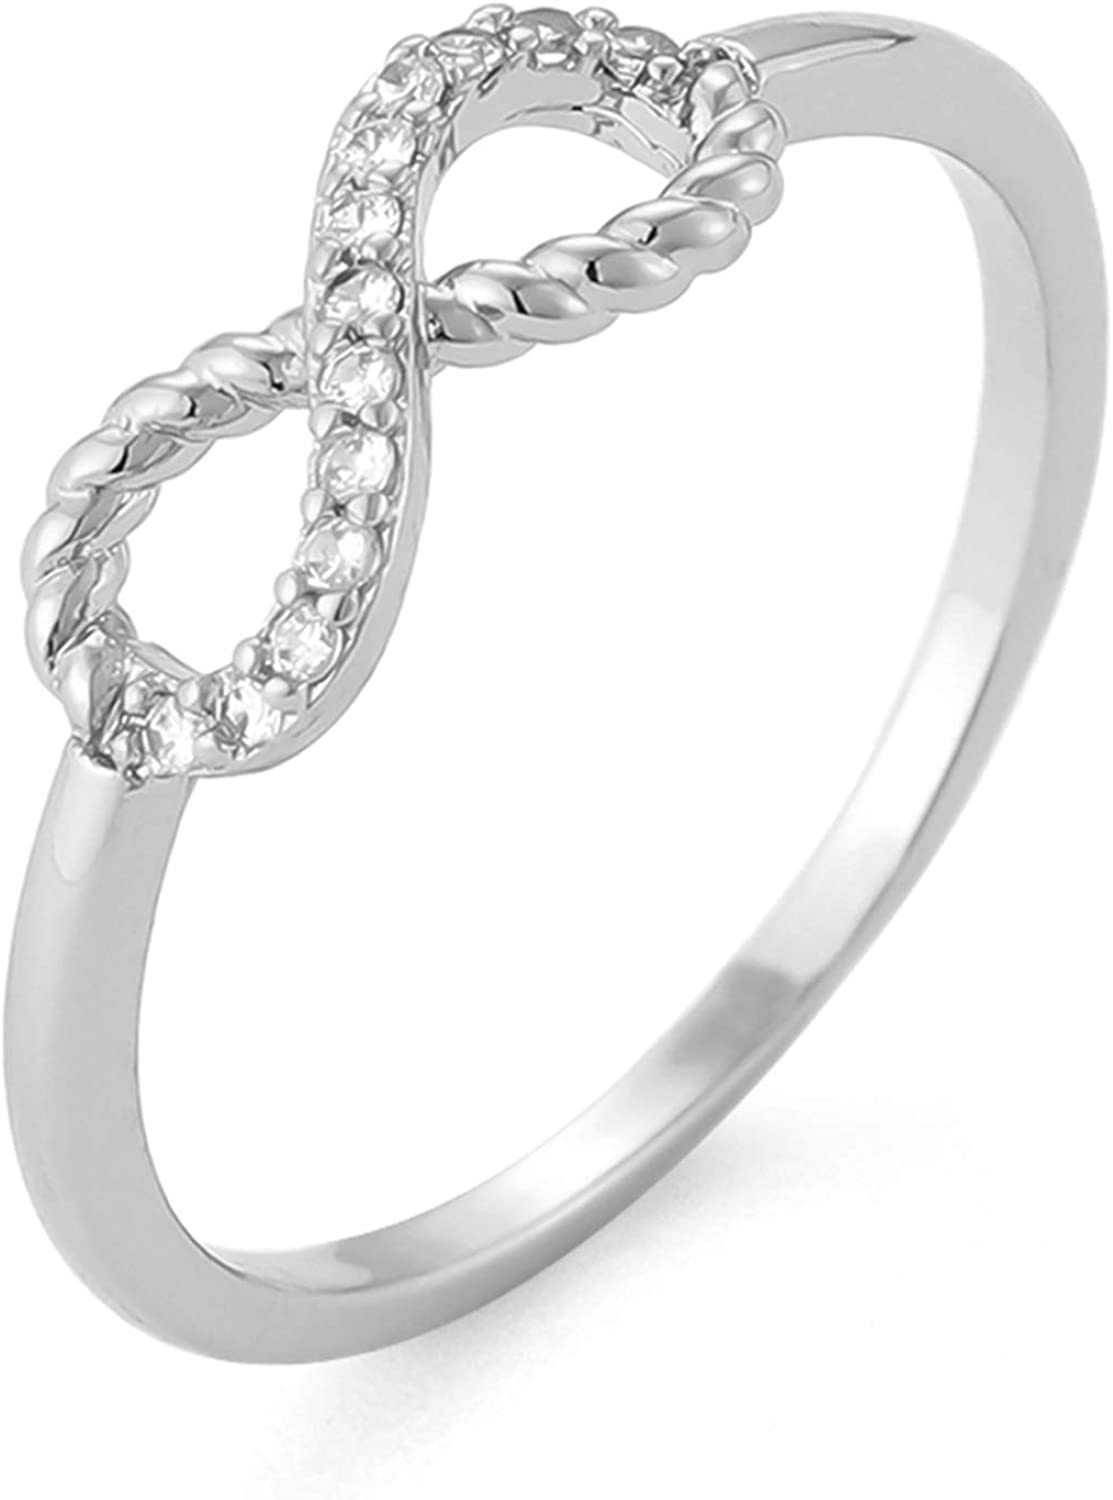 YMBYCM Pure Love and Eternity Rings 18K / White Gold Plated Ring Cubic Zirconia Engagement Wedding Rings for Women